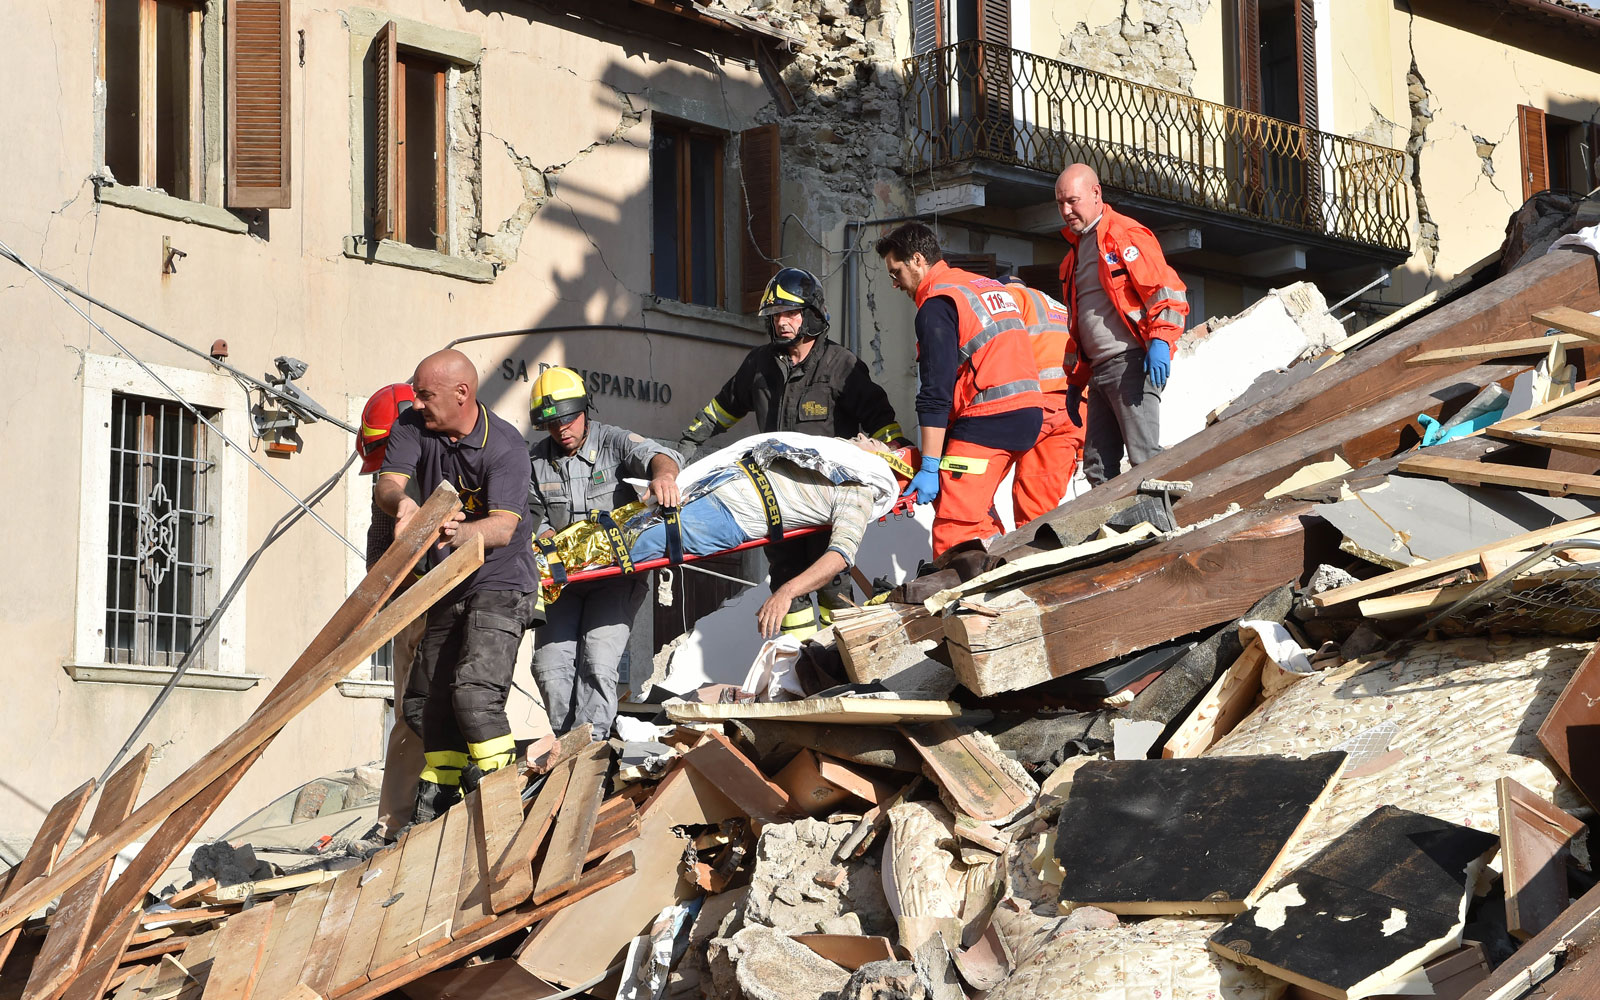 Teams rescue people who were trapped in the buildings that crumbled in the earthquake on Aug. 24, 2016.